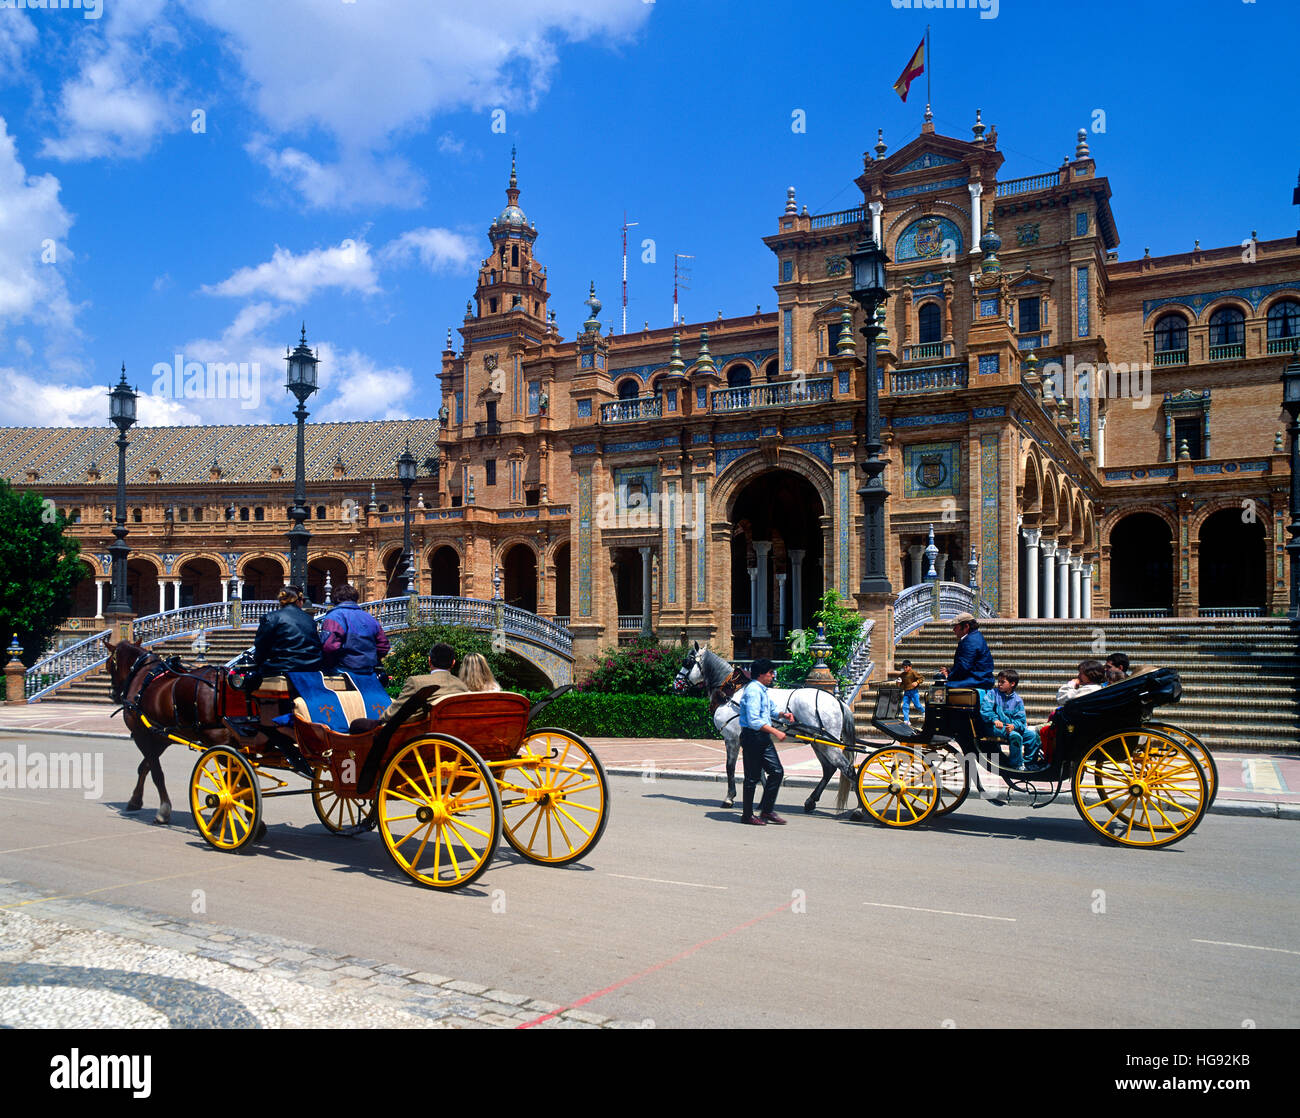 Tourists in Horse drawn carriage at the Plaza de Espana, Seville, Andalucia,Andalusia, Spain - Stock Image